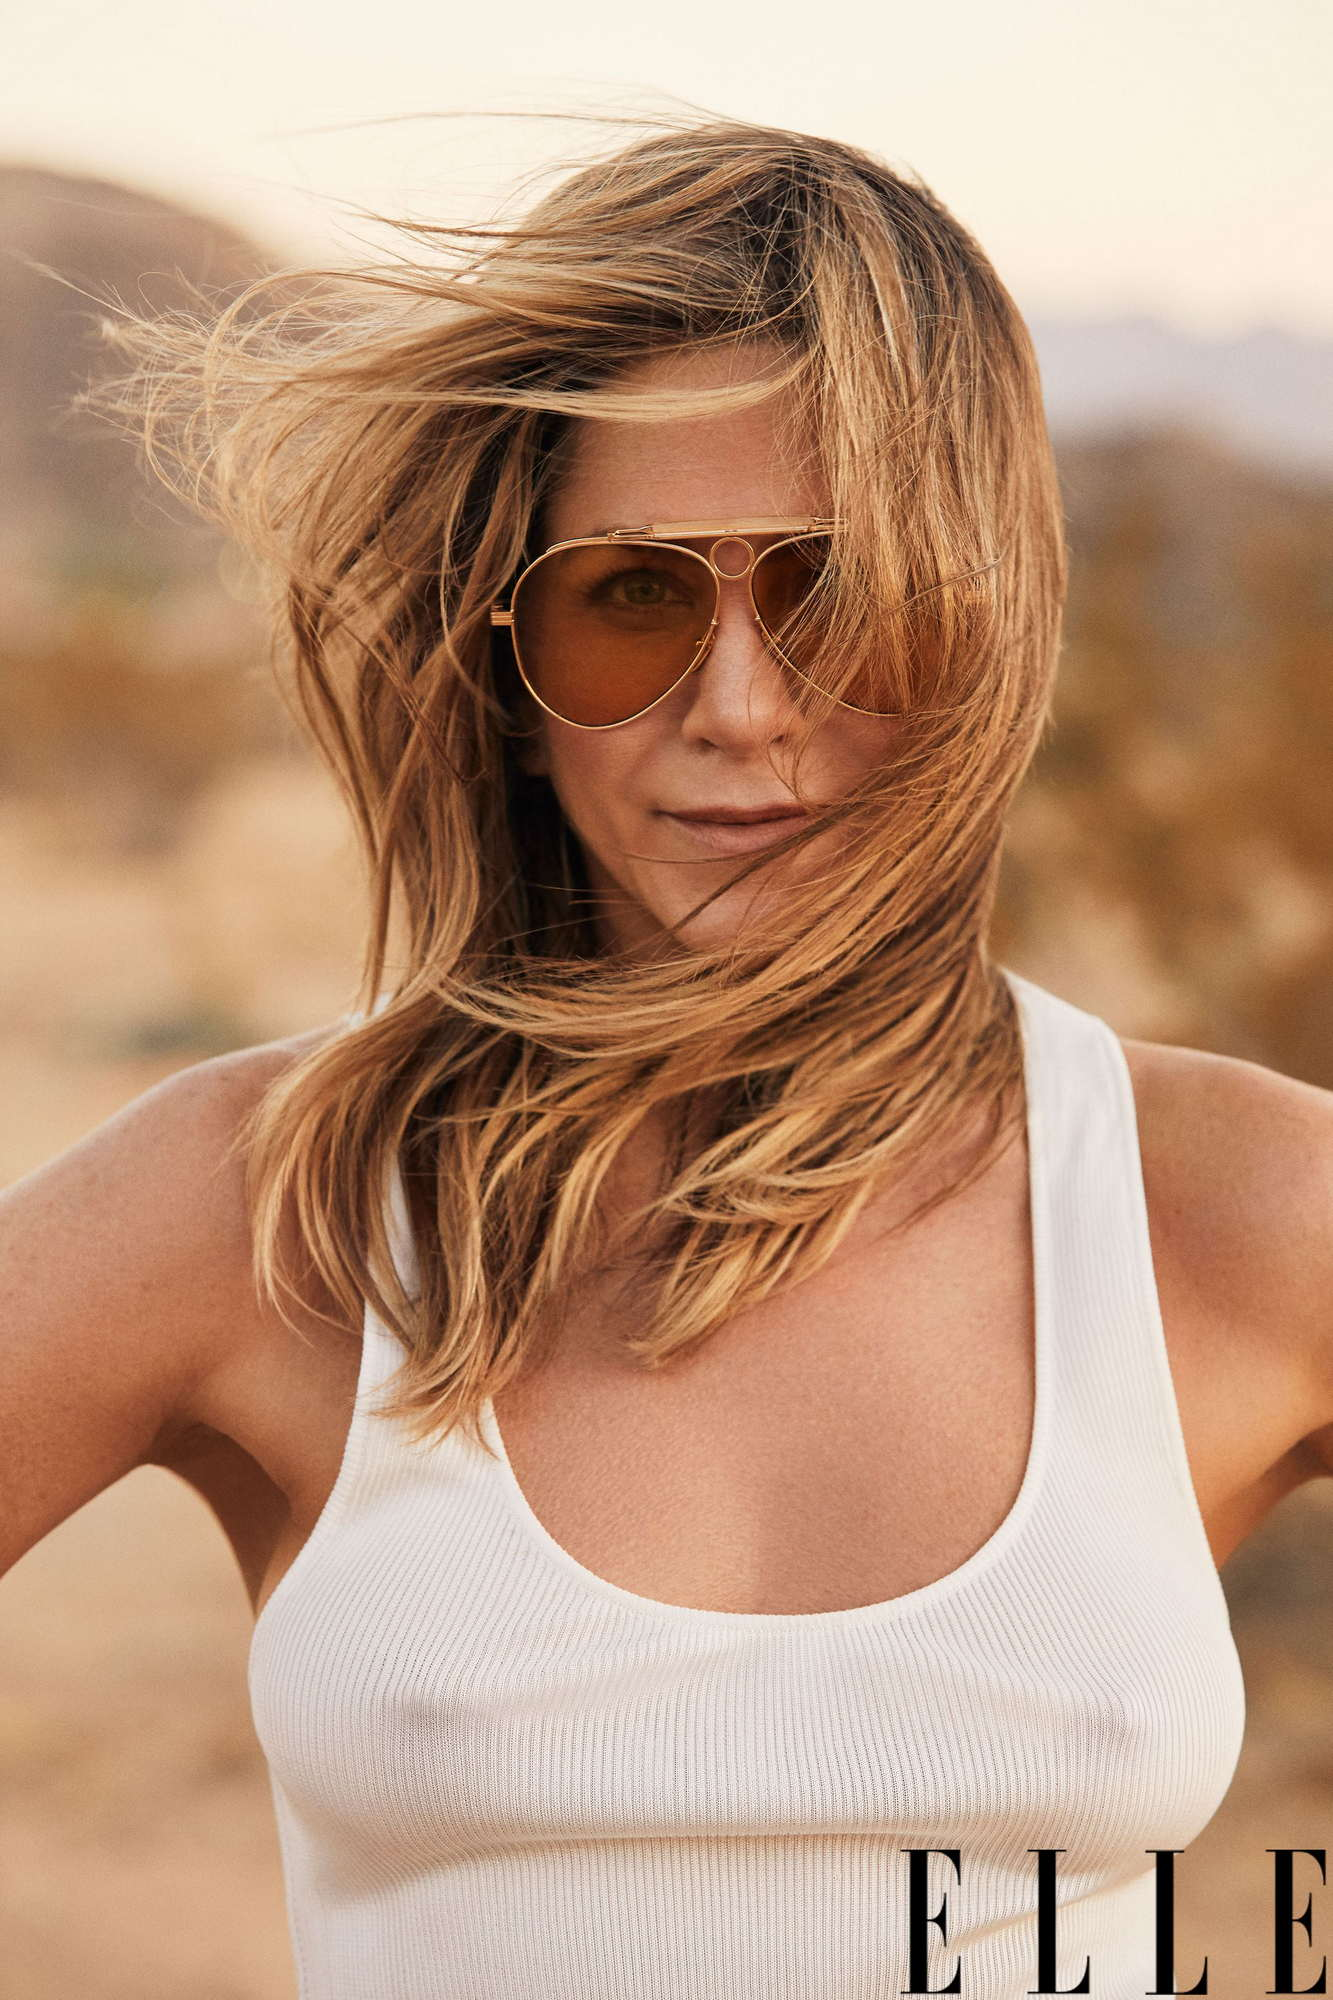 Jennifer-Aniston-Elle-US-January-20191.jpg